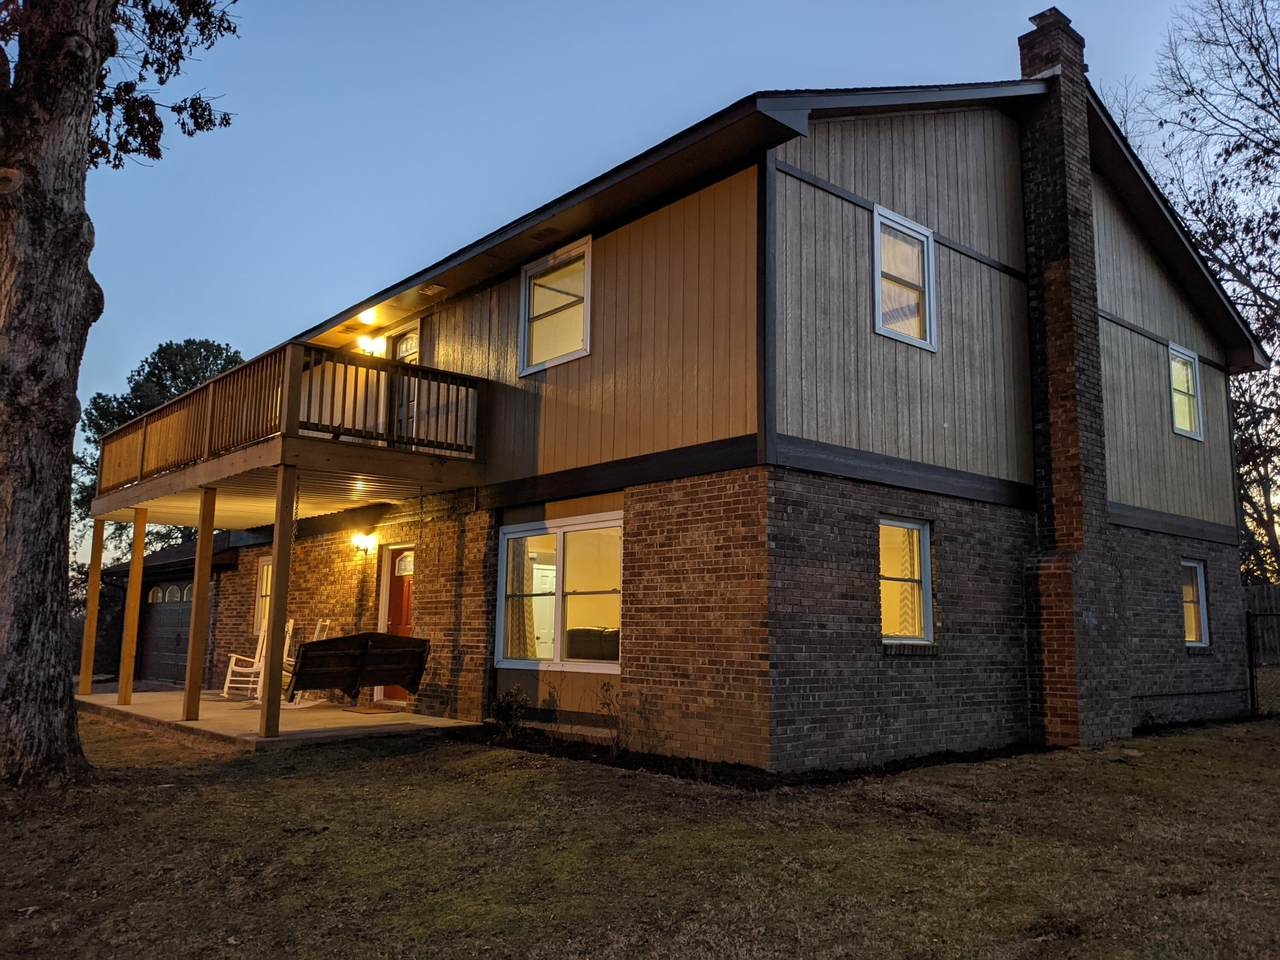 826 Troy Dr - Photo 1